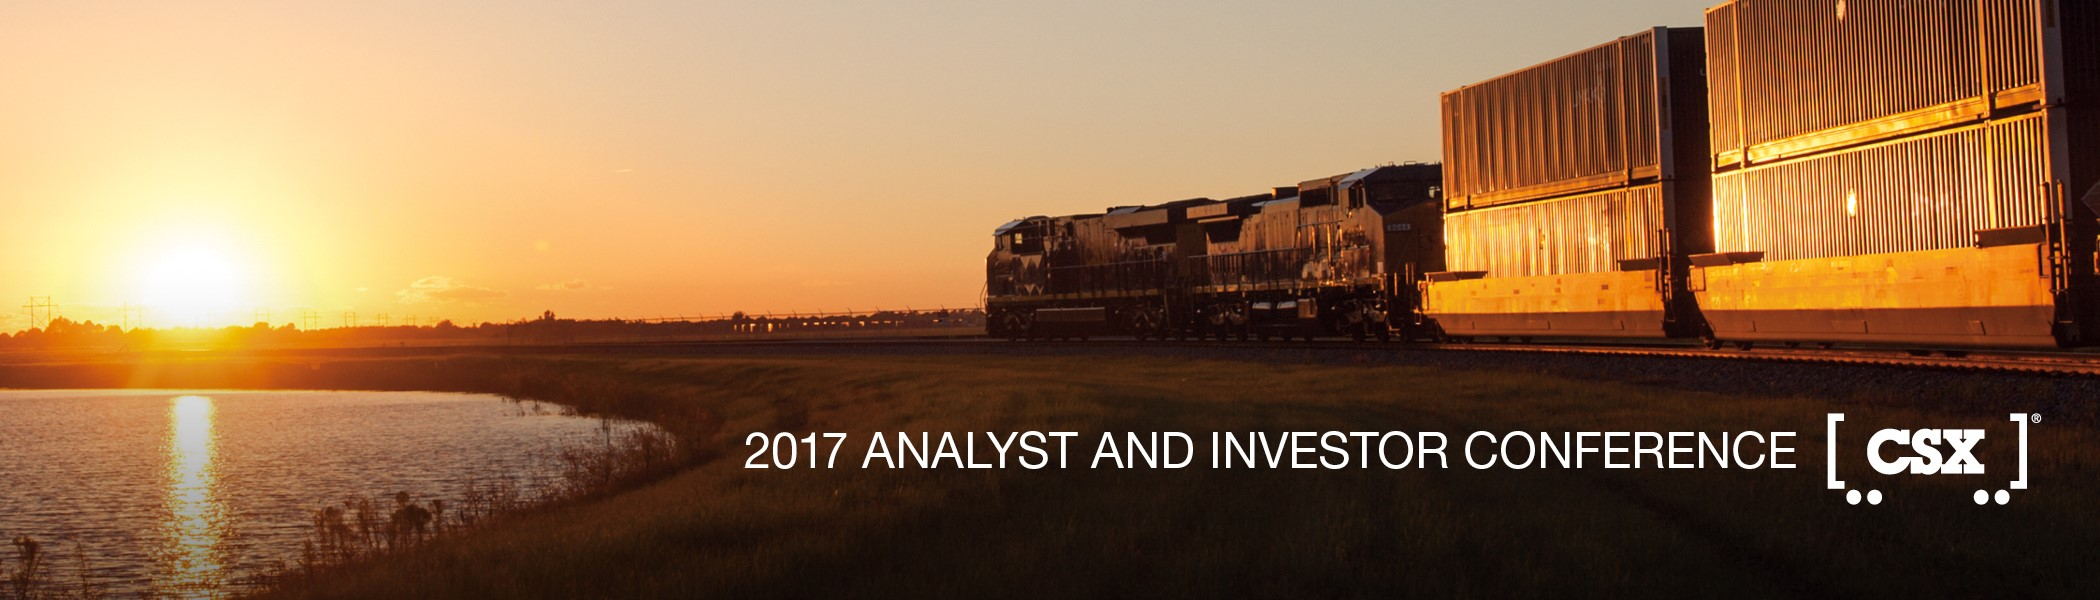 2017 CSX Analyst and Investor Conference